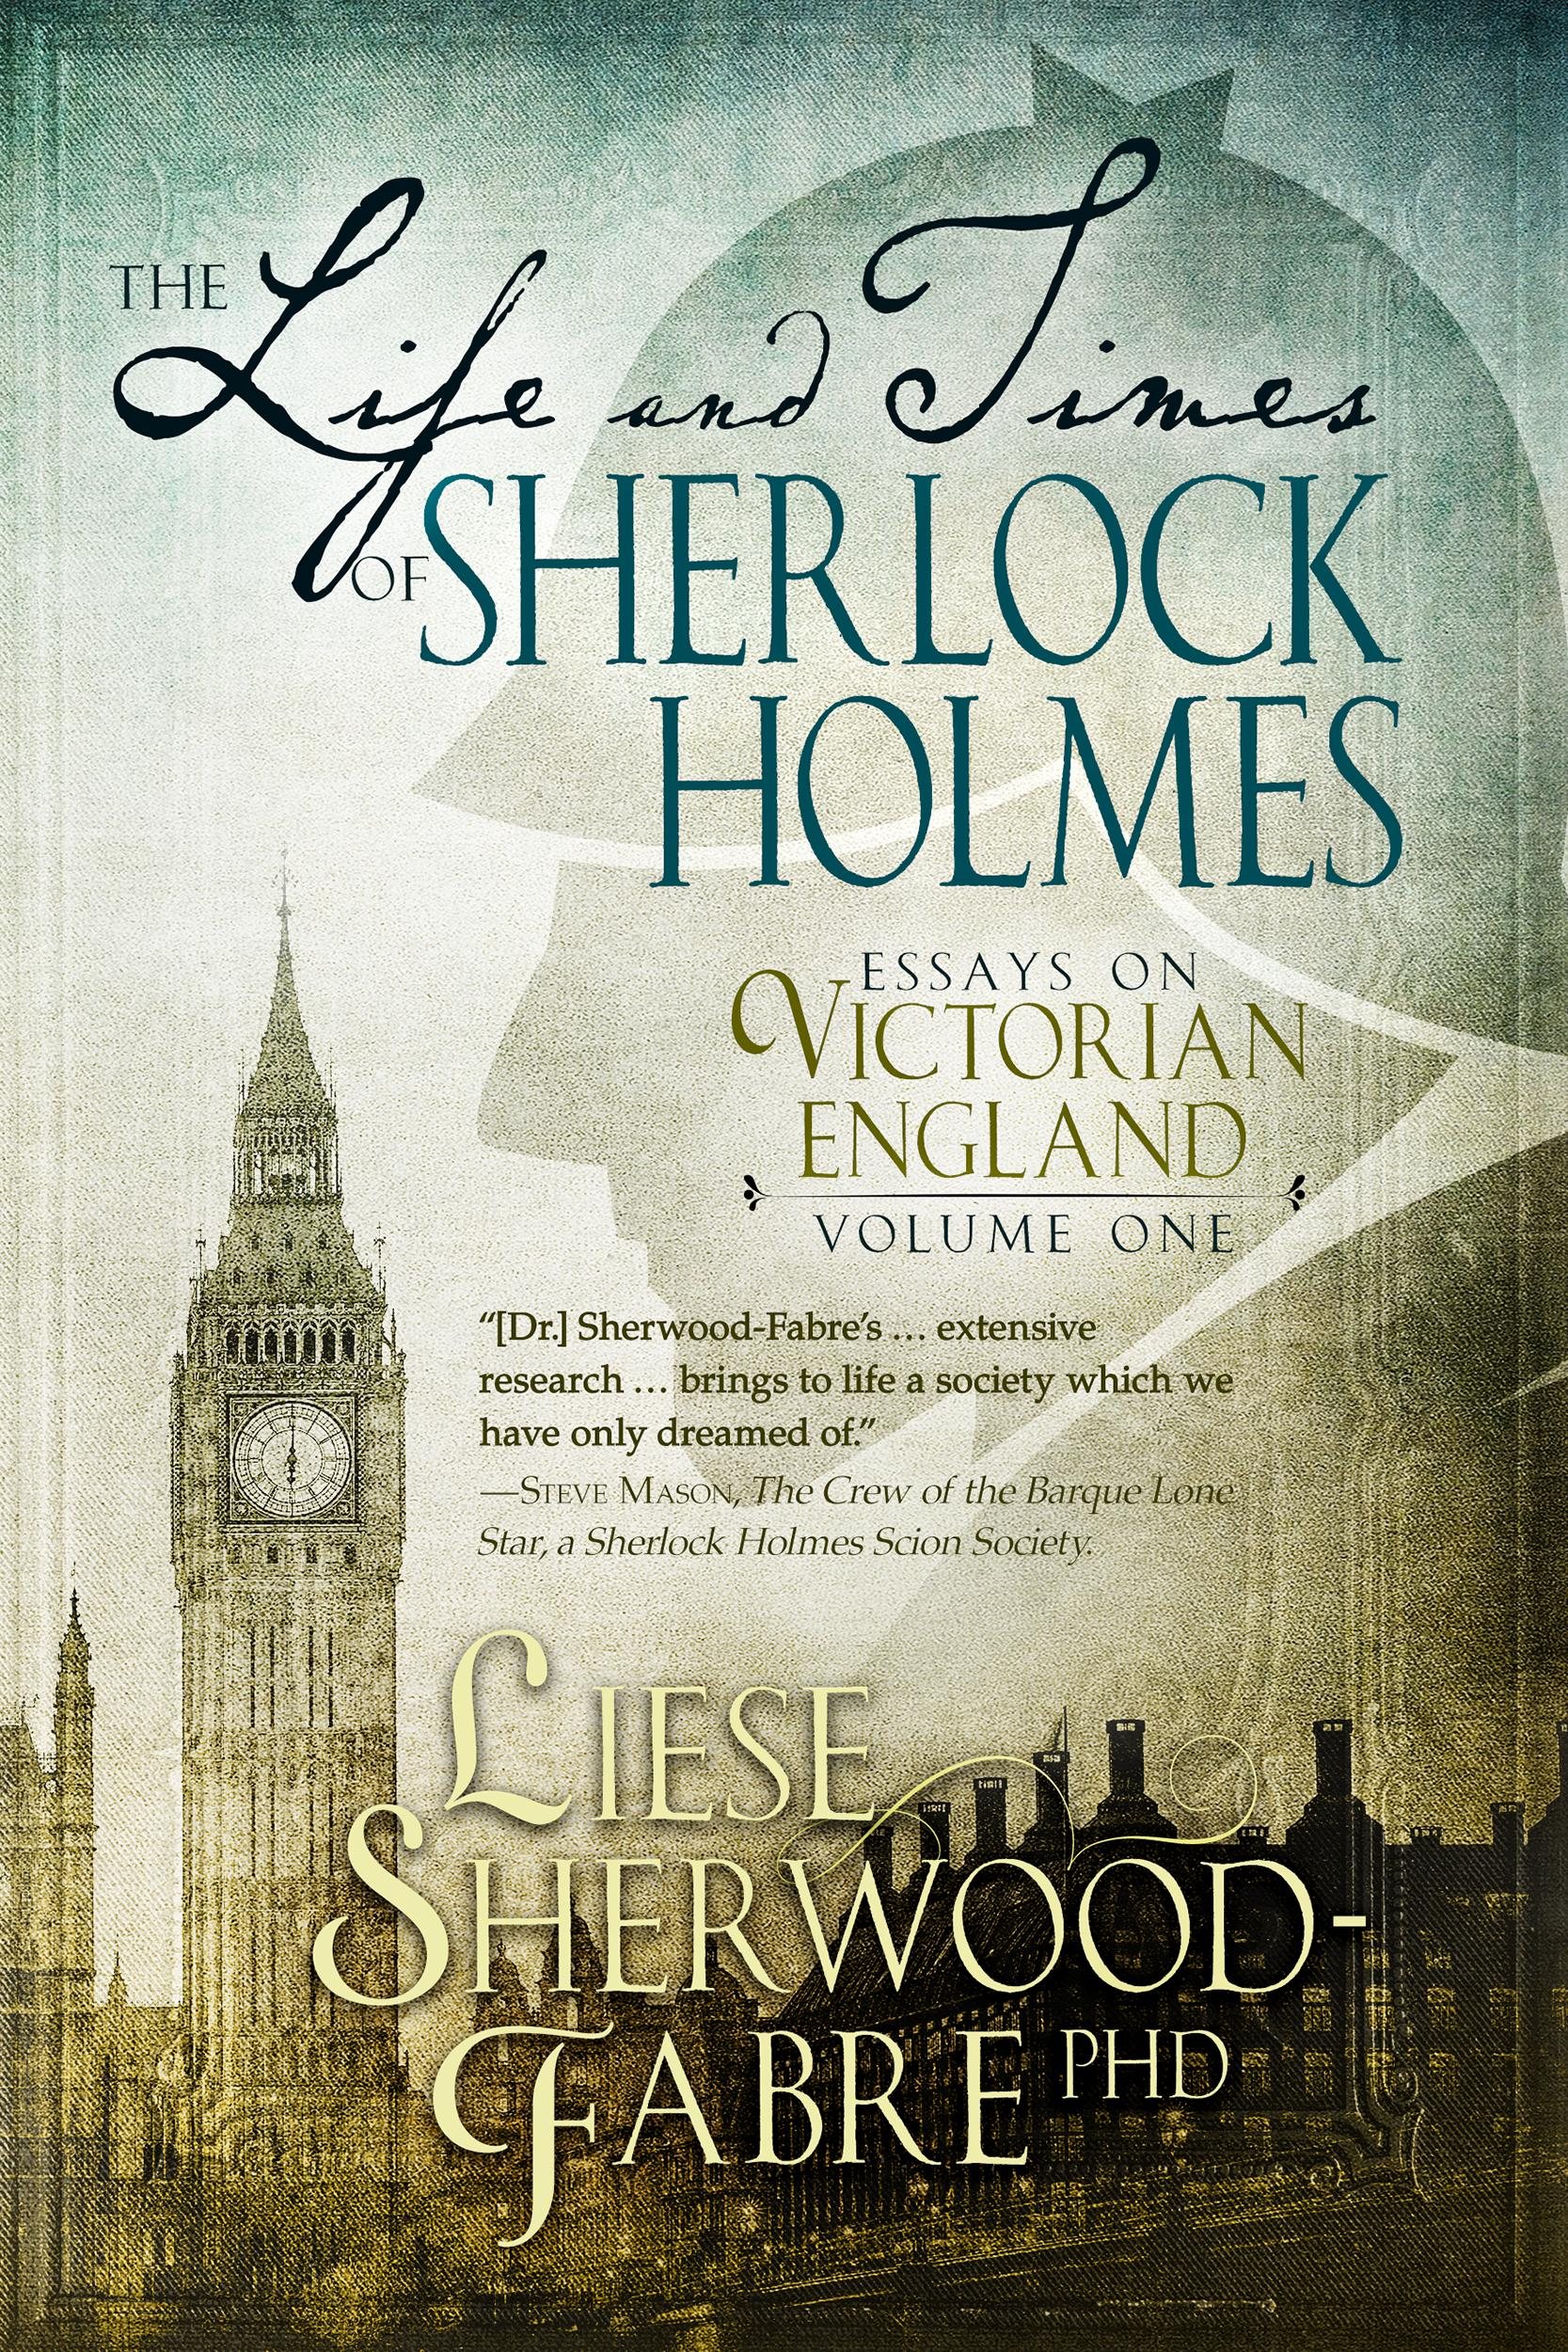 sherlock holmes 1 essay The complete sherlock holmesi happened to finish dan simmons's the fifth heart recently, and was a little put out about how he treated sherlock in some spots having now finished the complete stories and novels - okay, yeah.